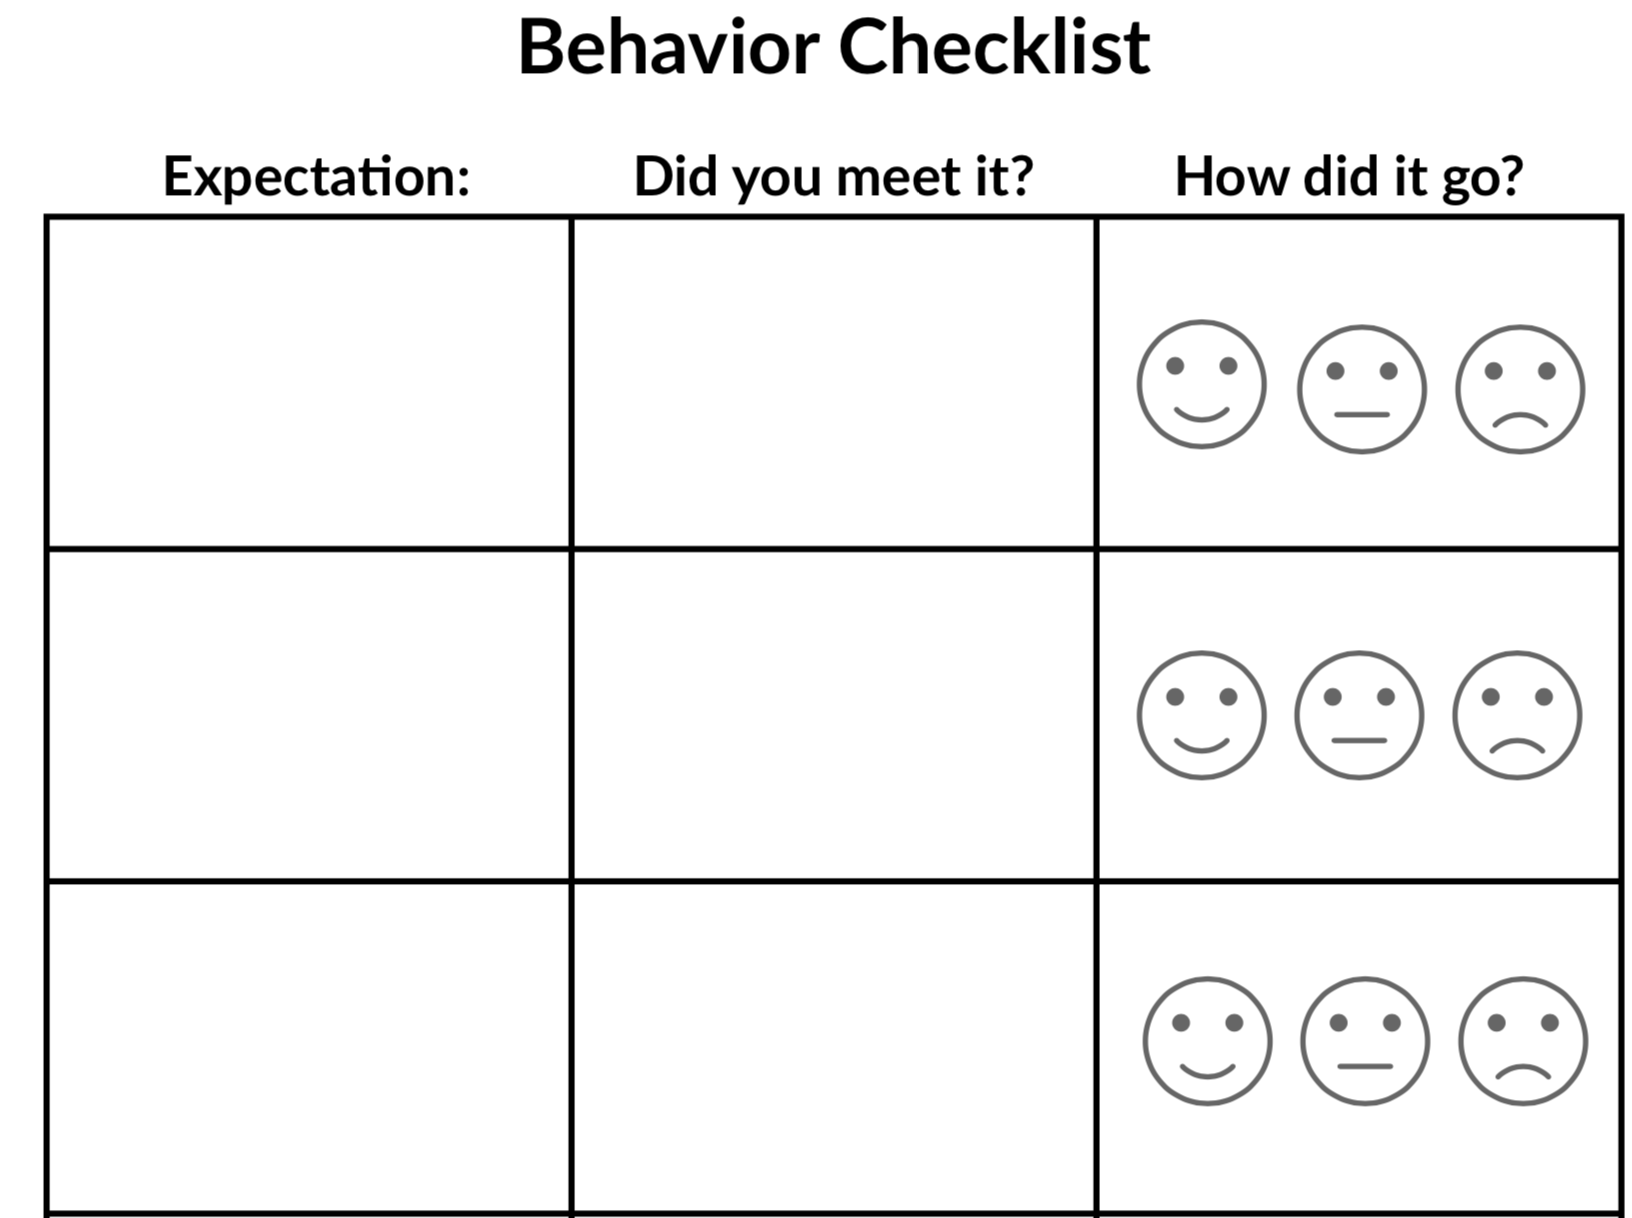 Behavior Checklist